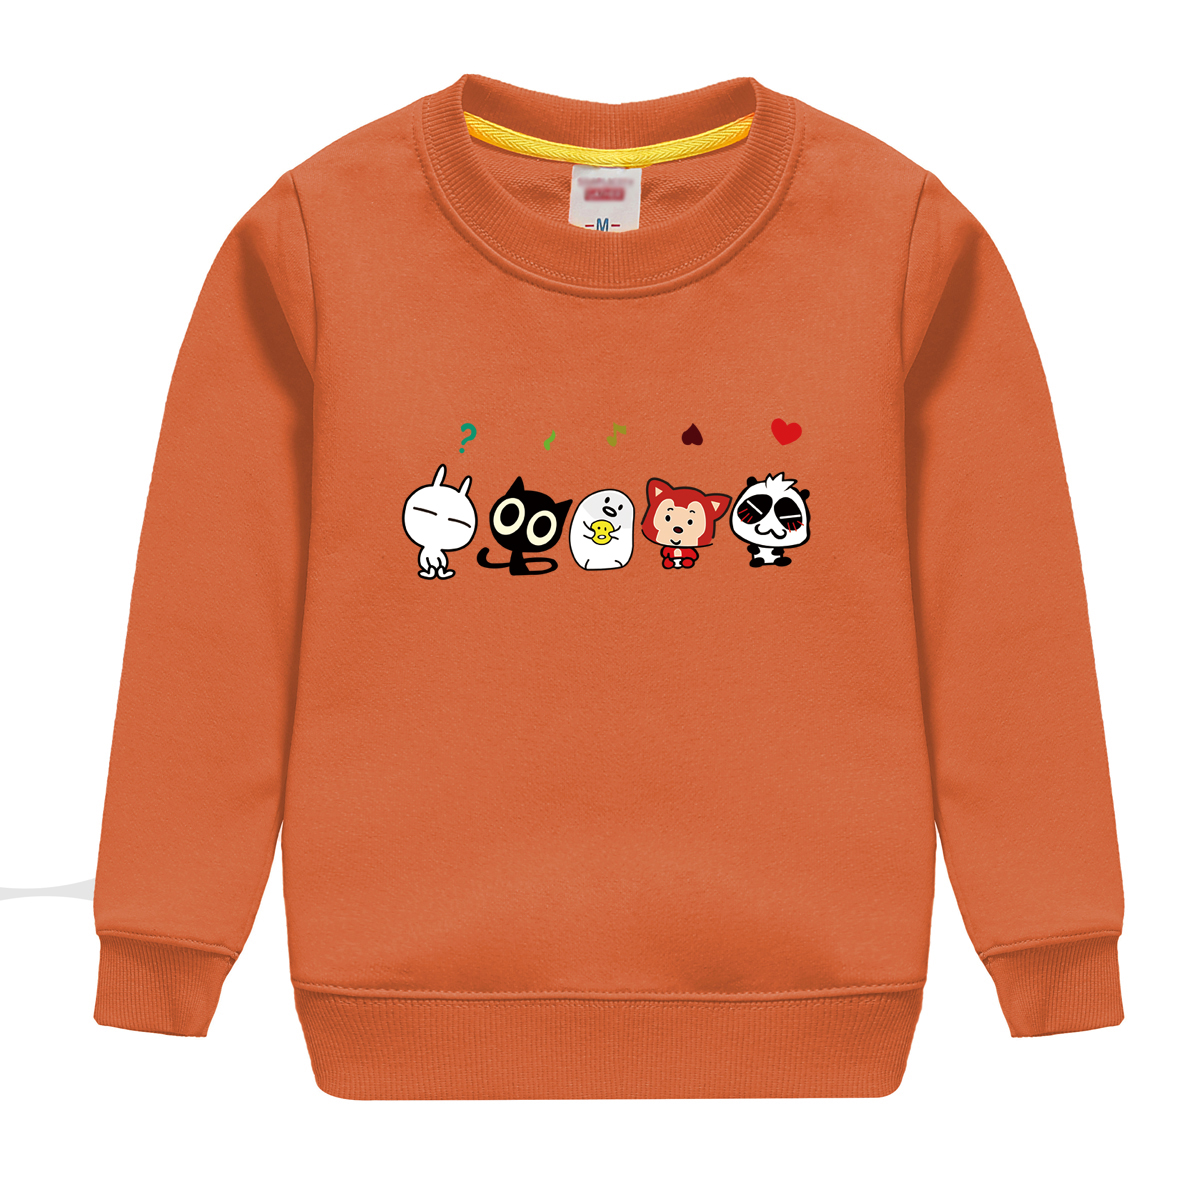 biubiu new fashion winter autumn 100% cotton sweatshirt design for boys and girls , top soft sweater with cute cartoon pattern